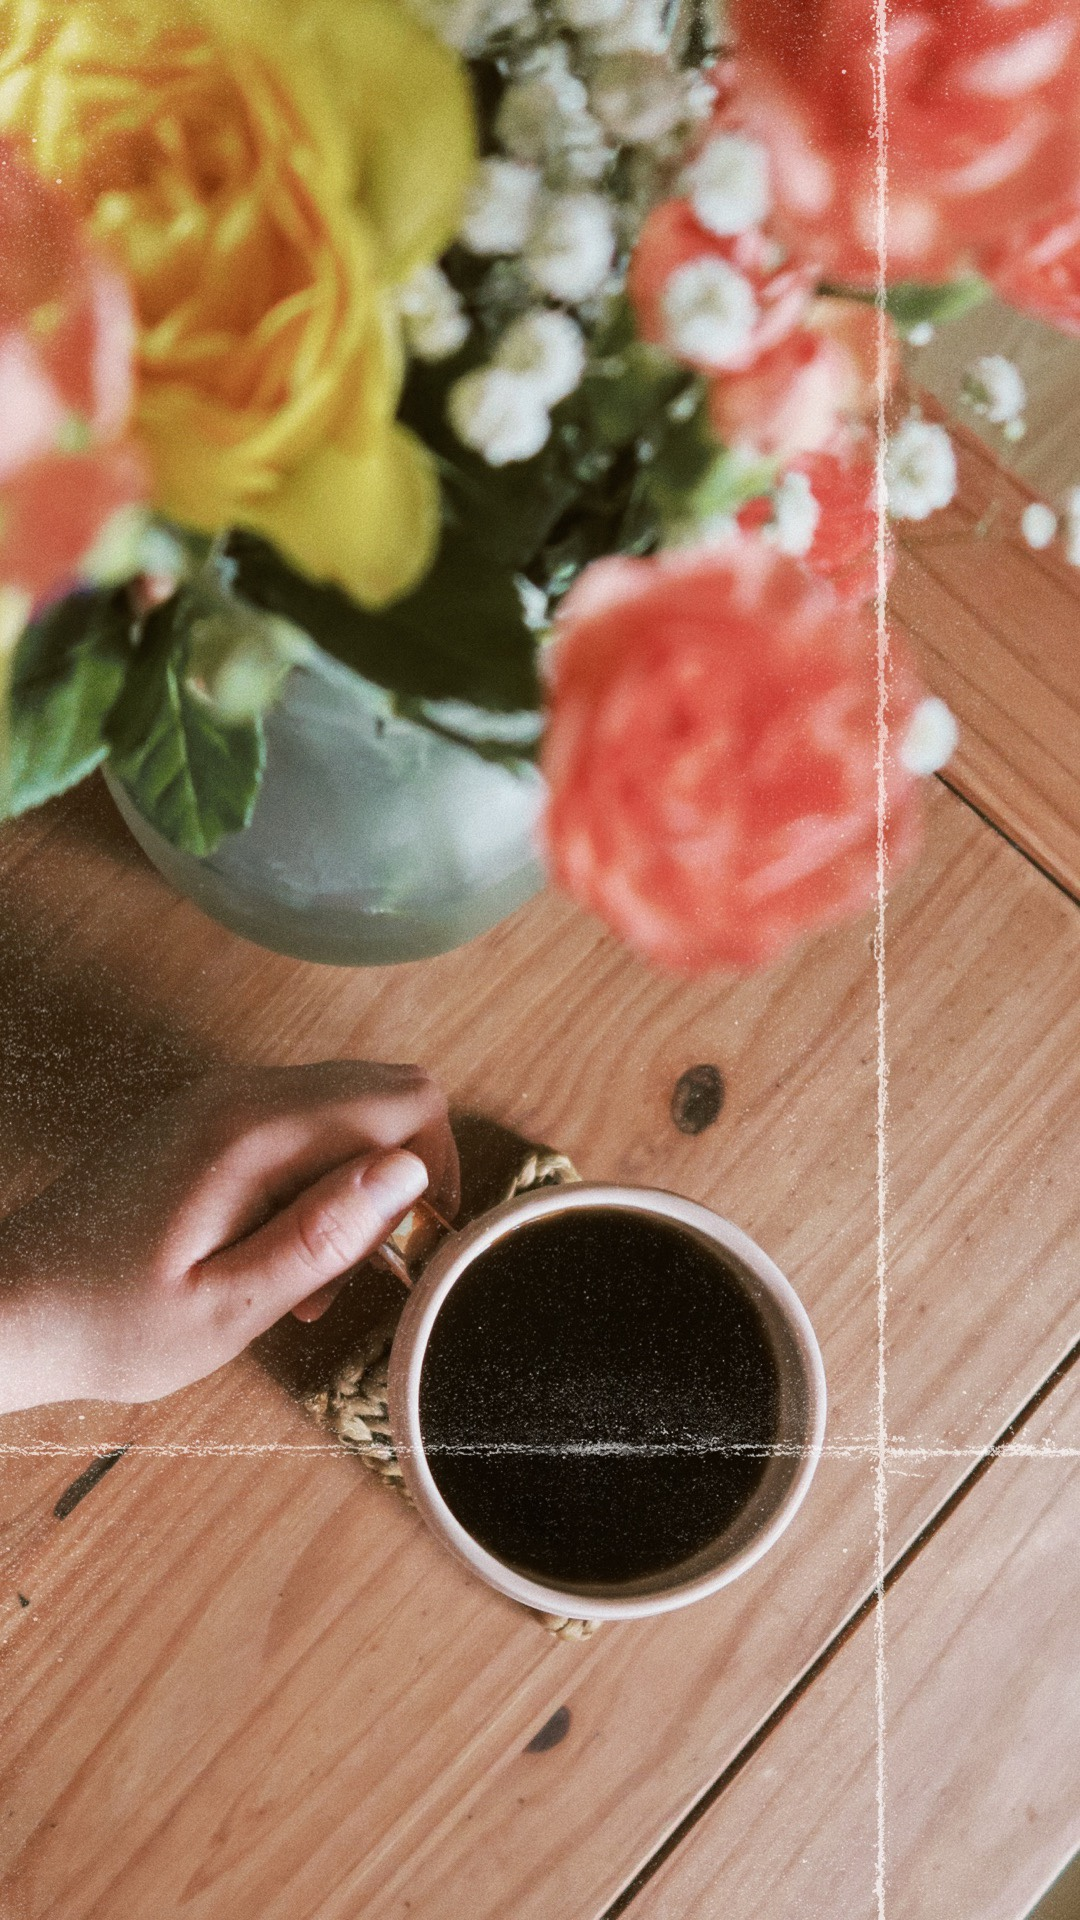 Flatlay, Coffee, Filmic, 35mm film style, app, filmic edit, Flowers, Hand, Beauty Blogs, Lifestyle Blogs, UK Blogs, Katie Writes, katiewrites, blog post recommendations, what blogs to read, blog recommendations, uk bloggers, katiebwrites, Katie Writes Blog,